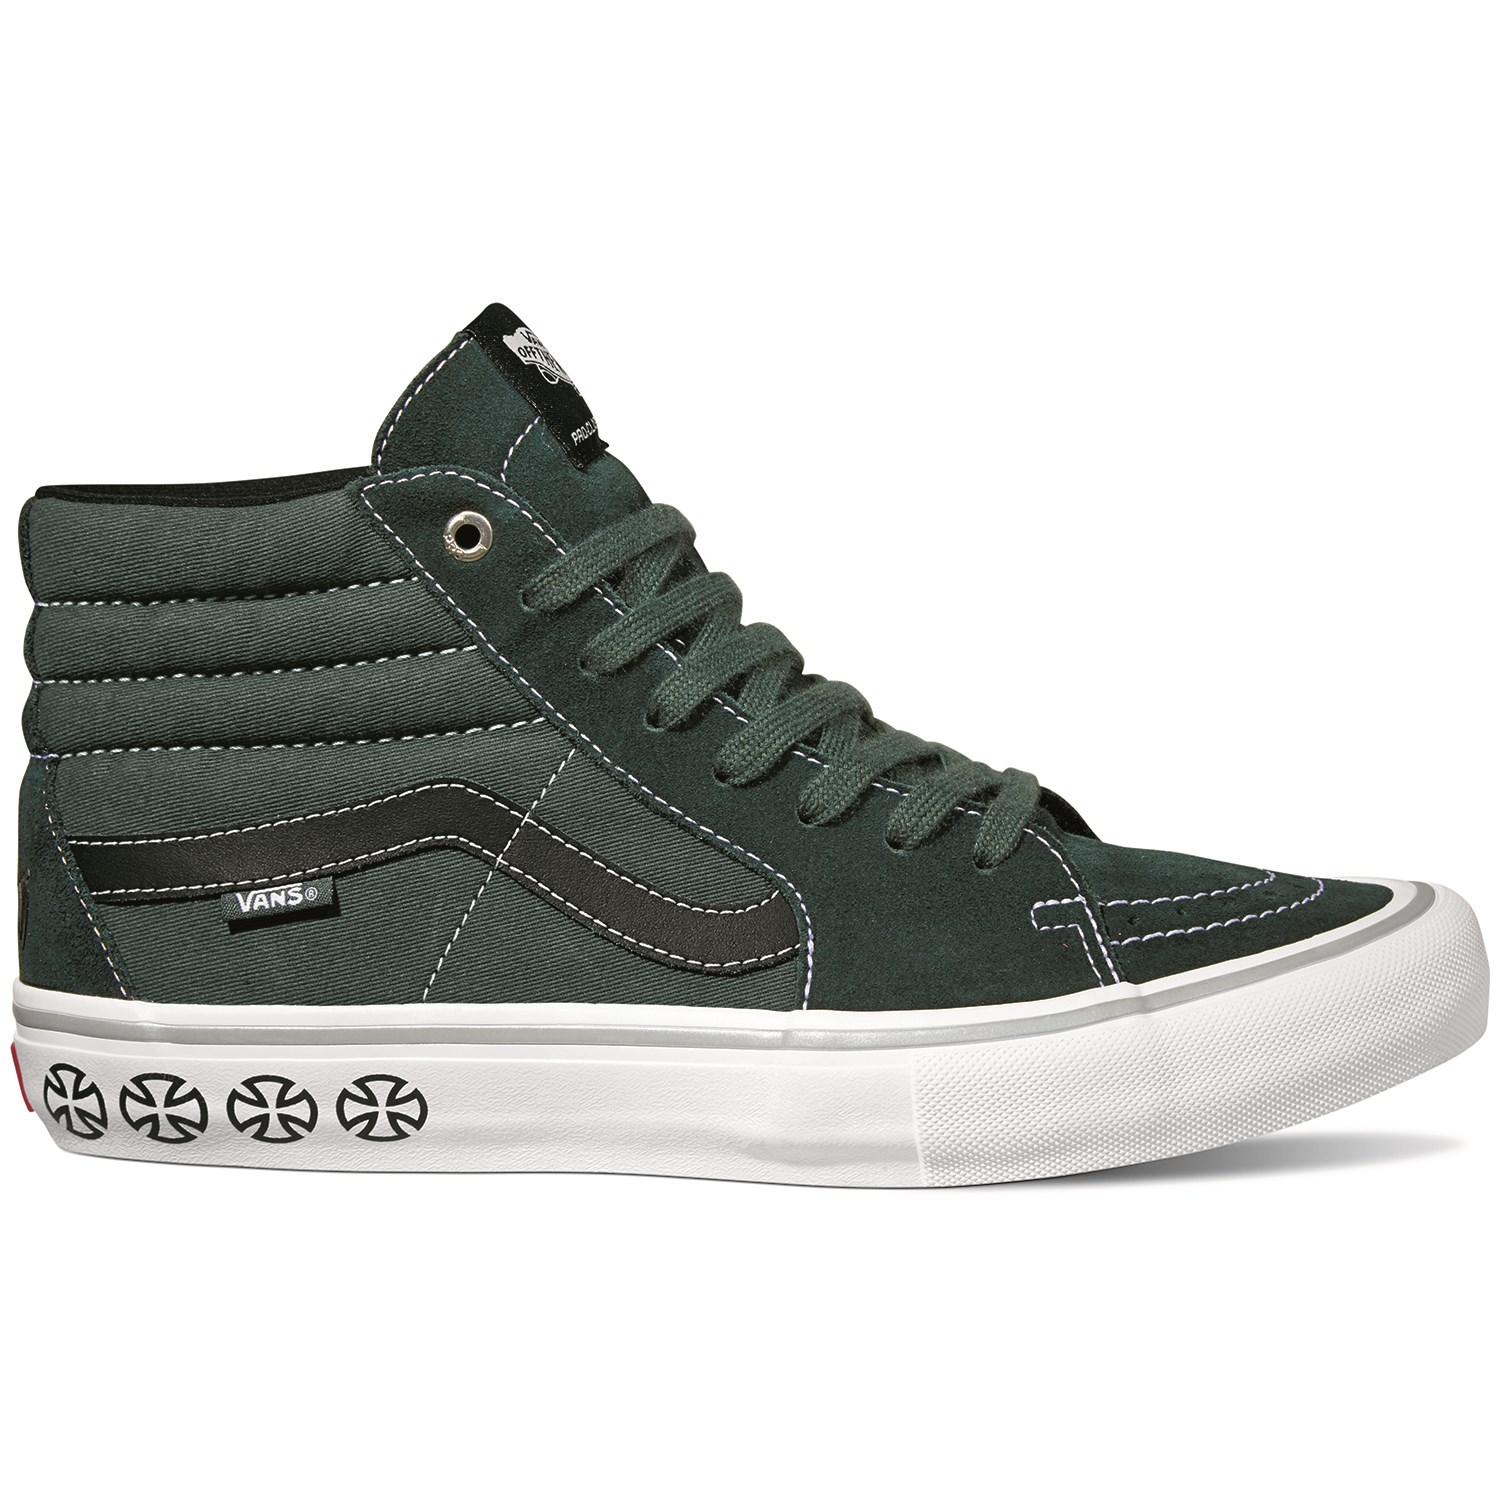 3c17c923aac230 Vans hi pro skate shoes evo jpg 1500x1500 High top skate shoes vans